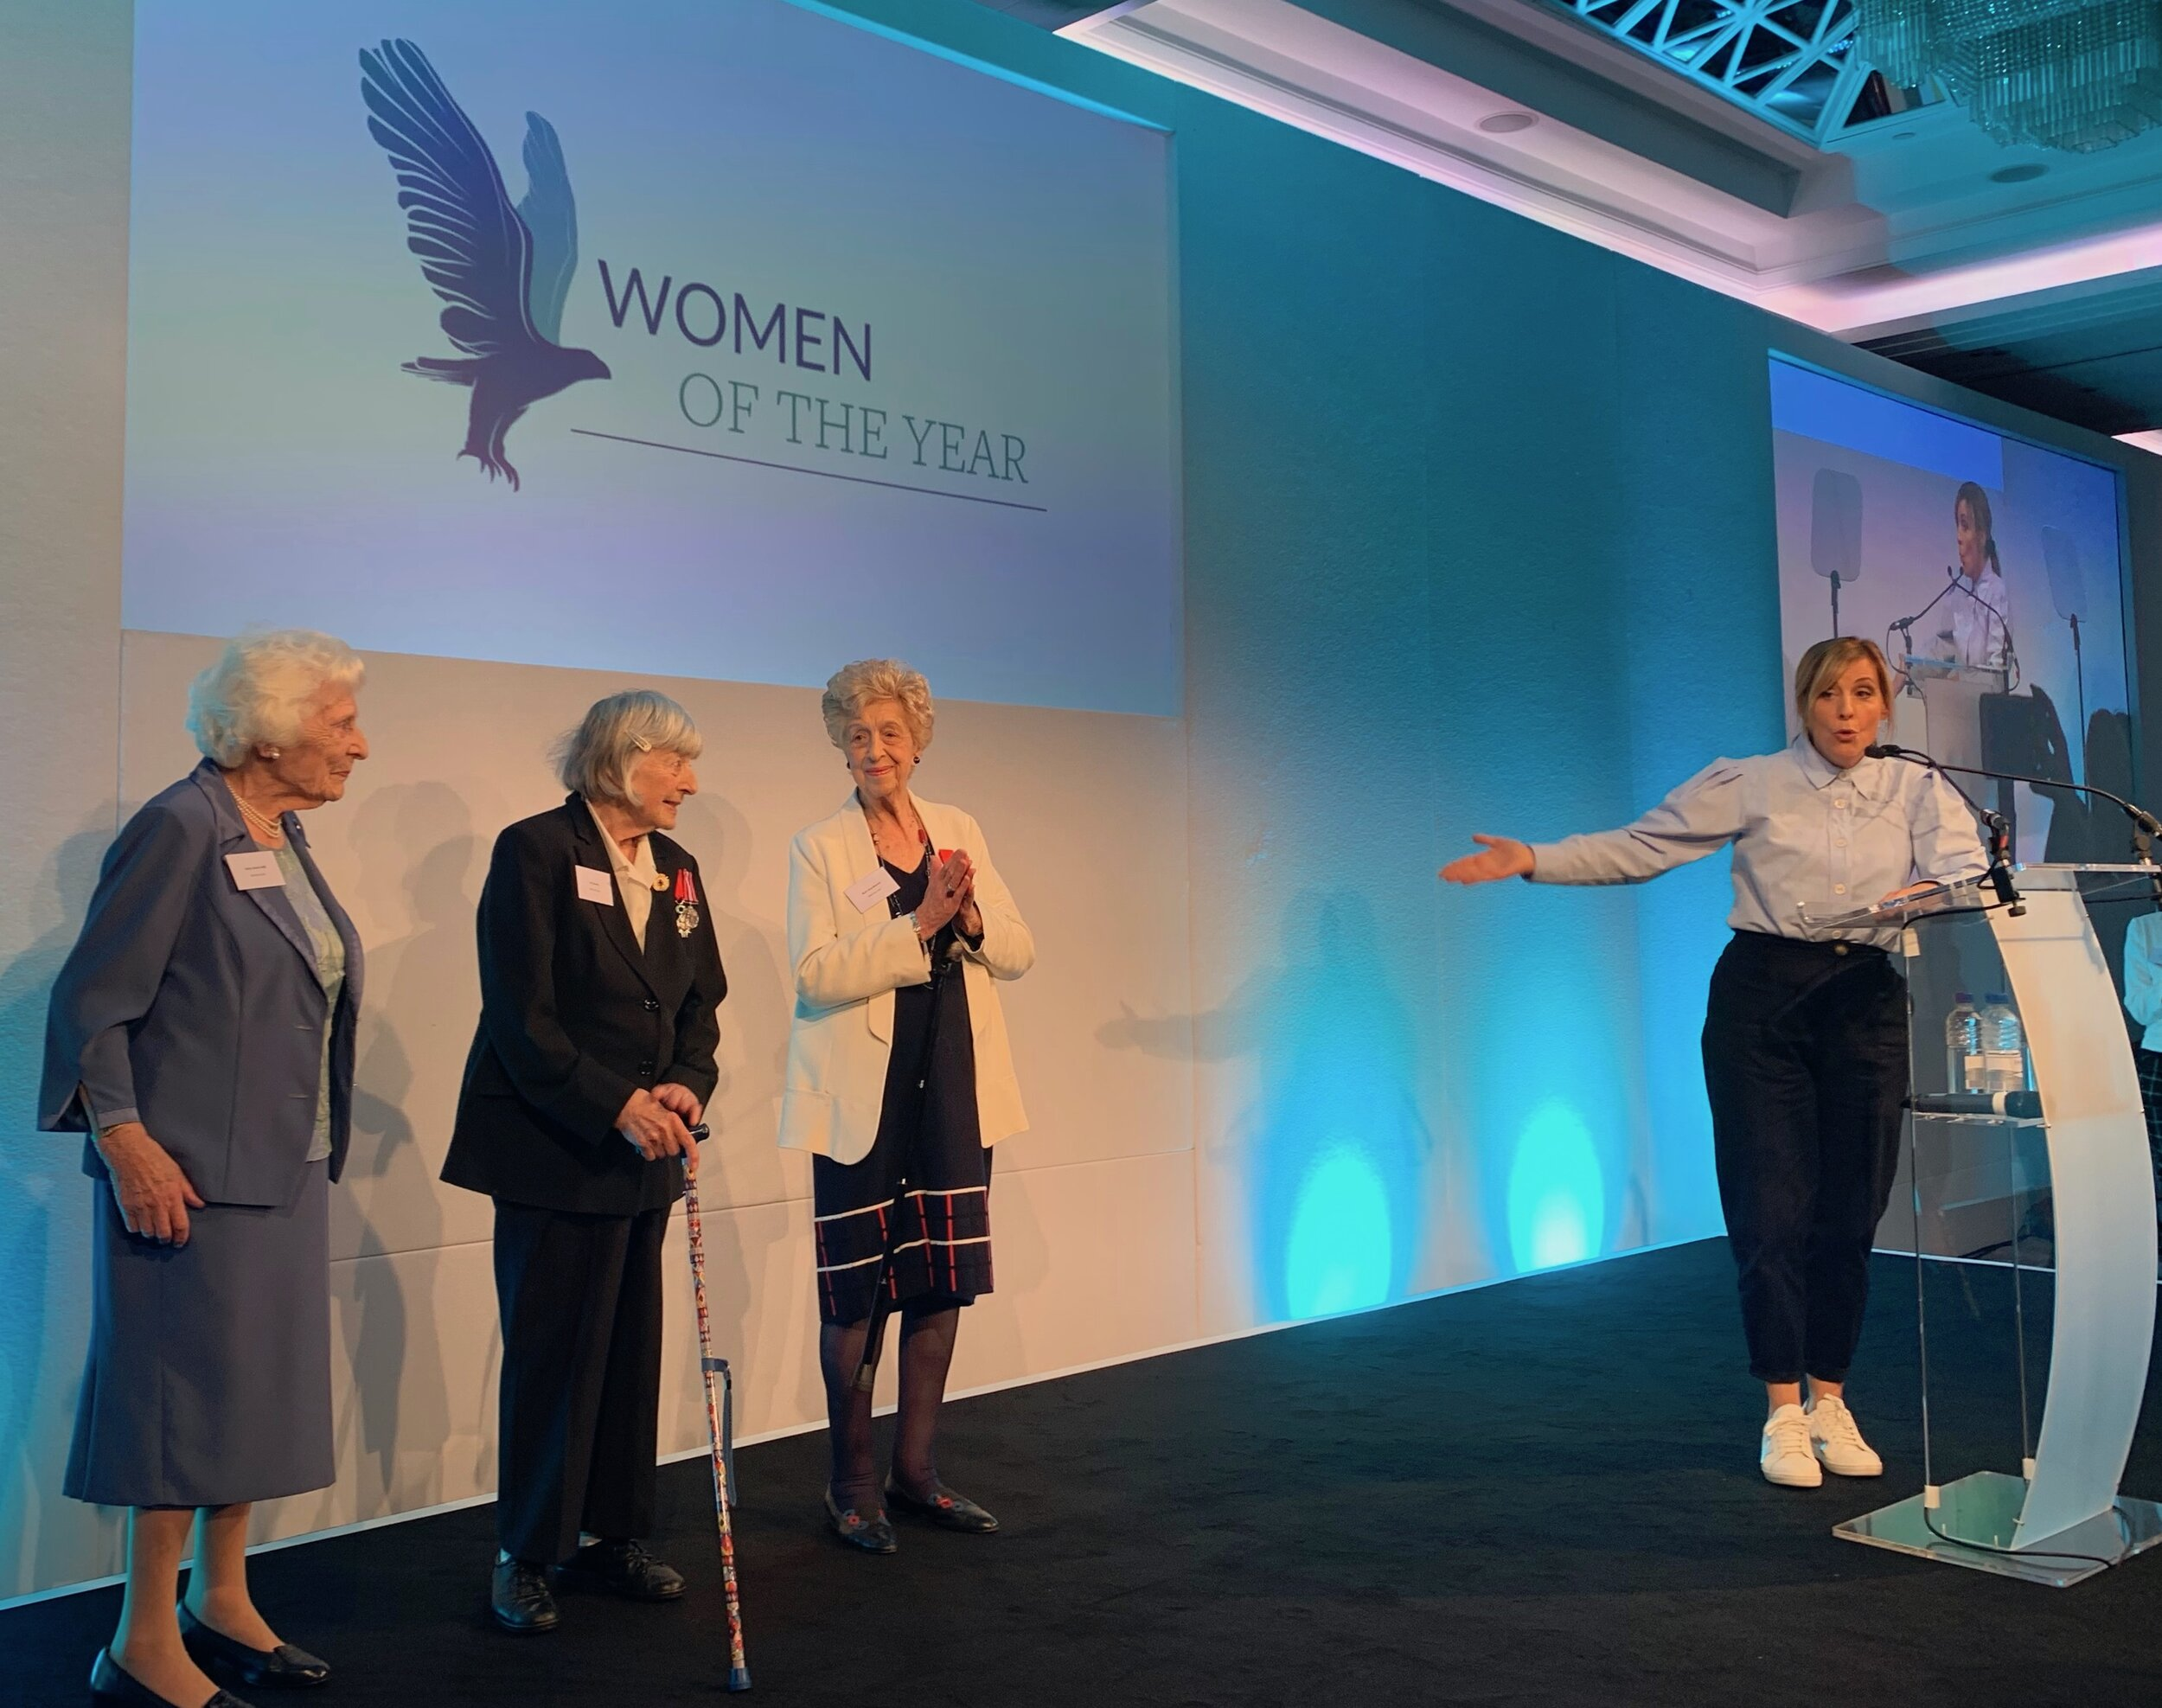 Ruth (far right) and her code-breaking colleagues, Pat (centre) and Betty (left) being introduced to the Women of the Year attendees (who were giving them a deafening standing ovation) by host Mel Giedroyc